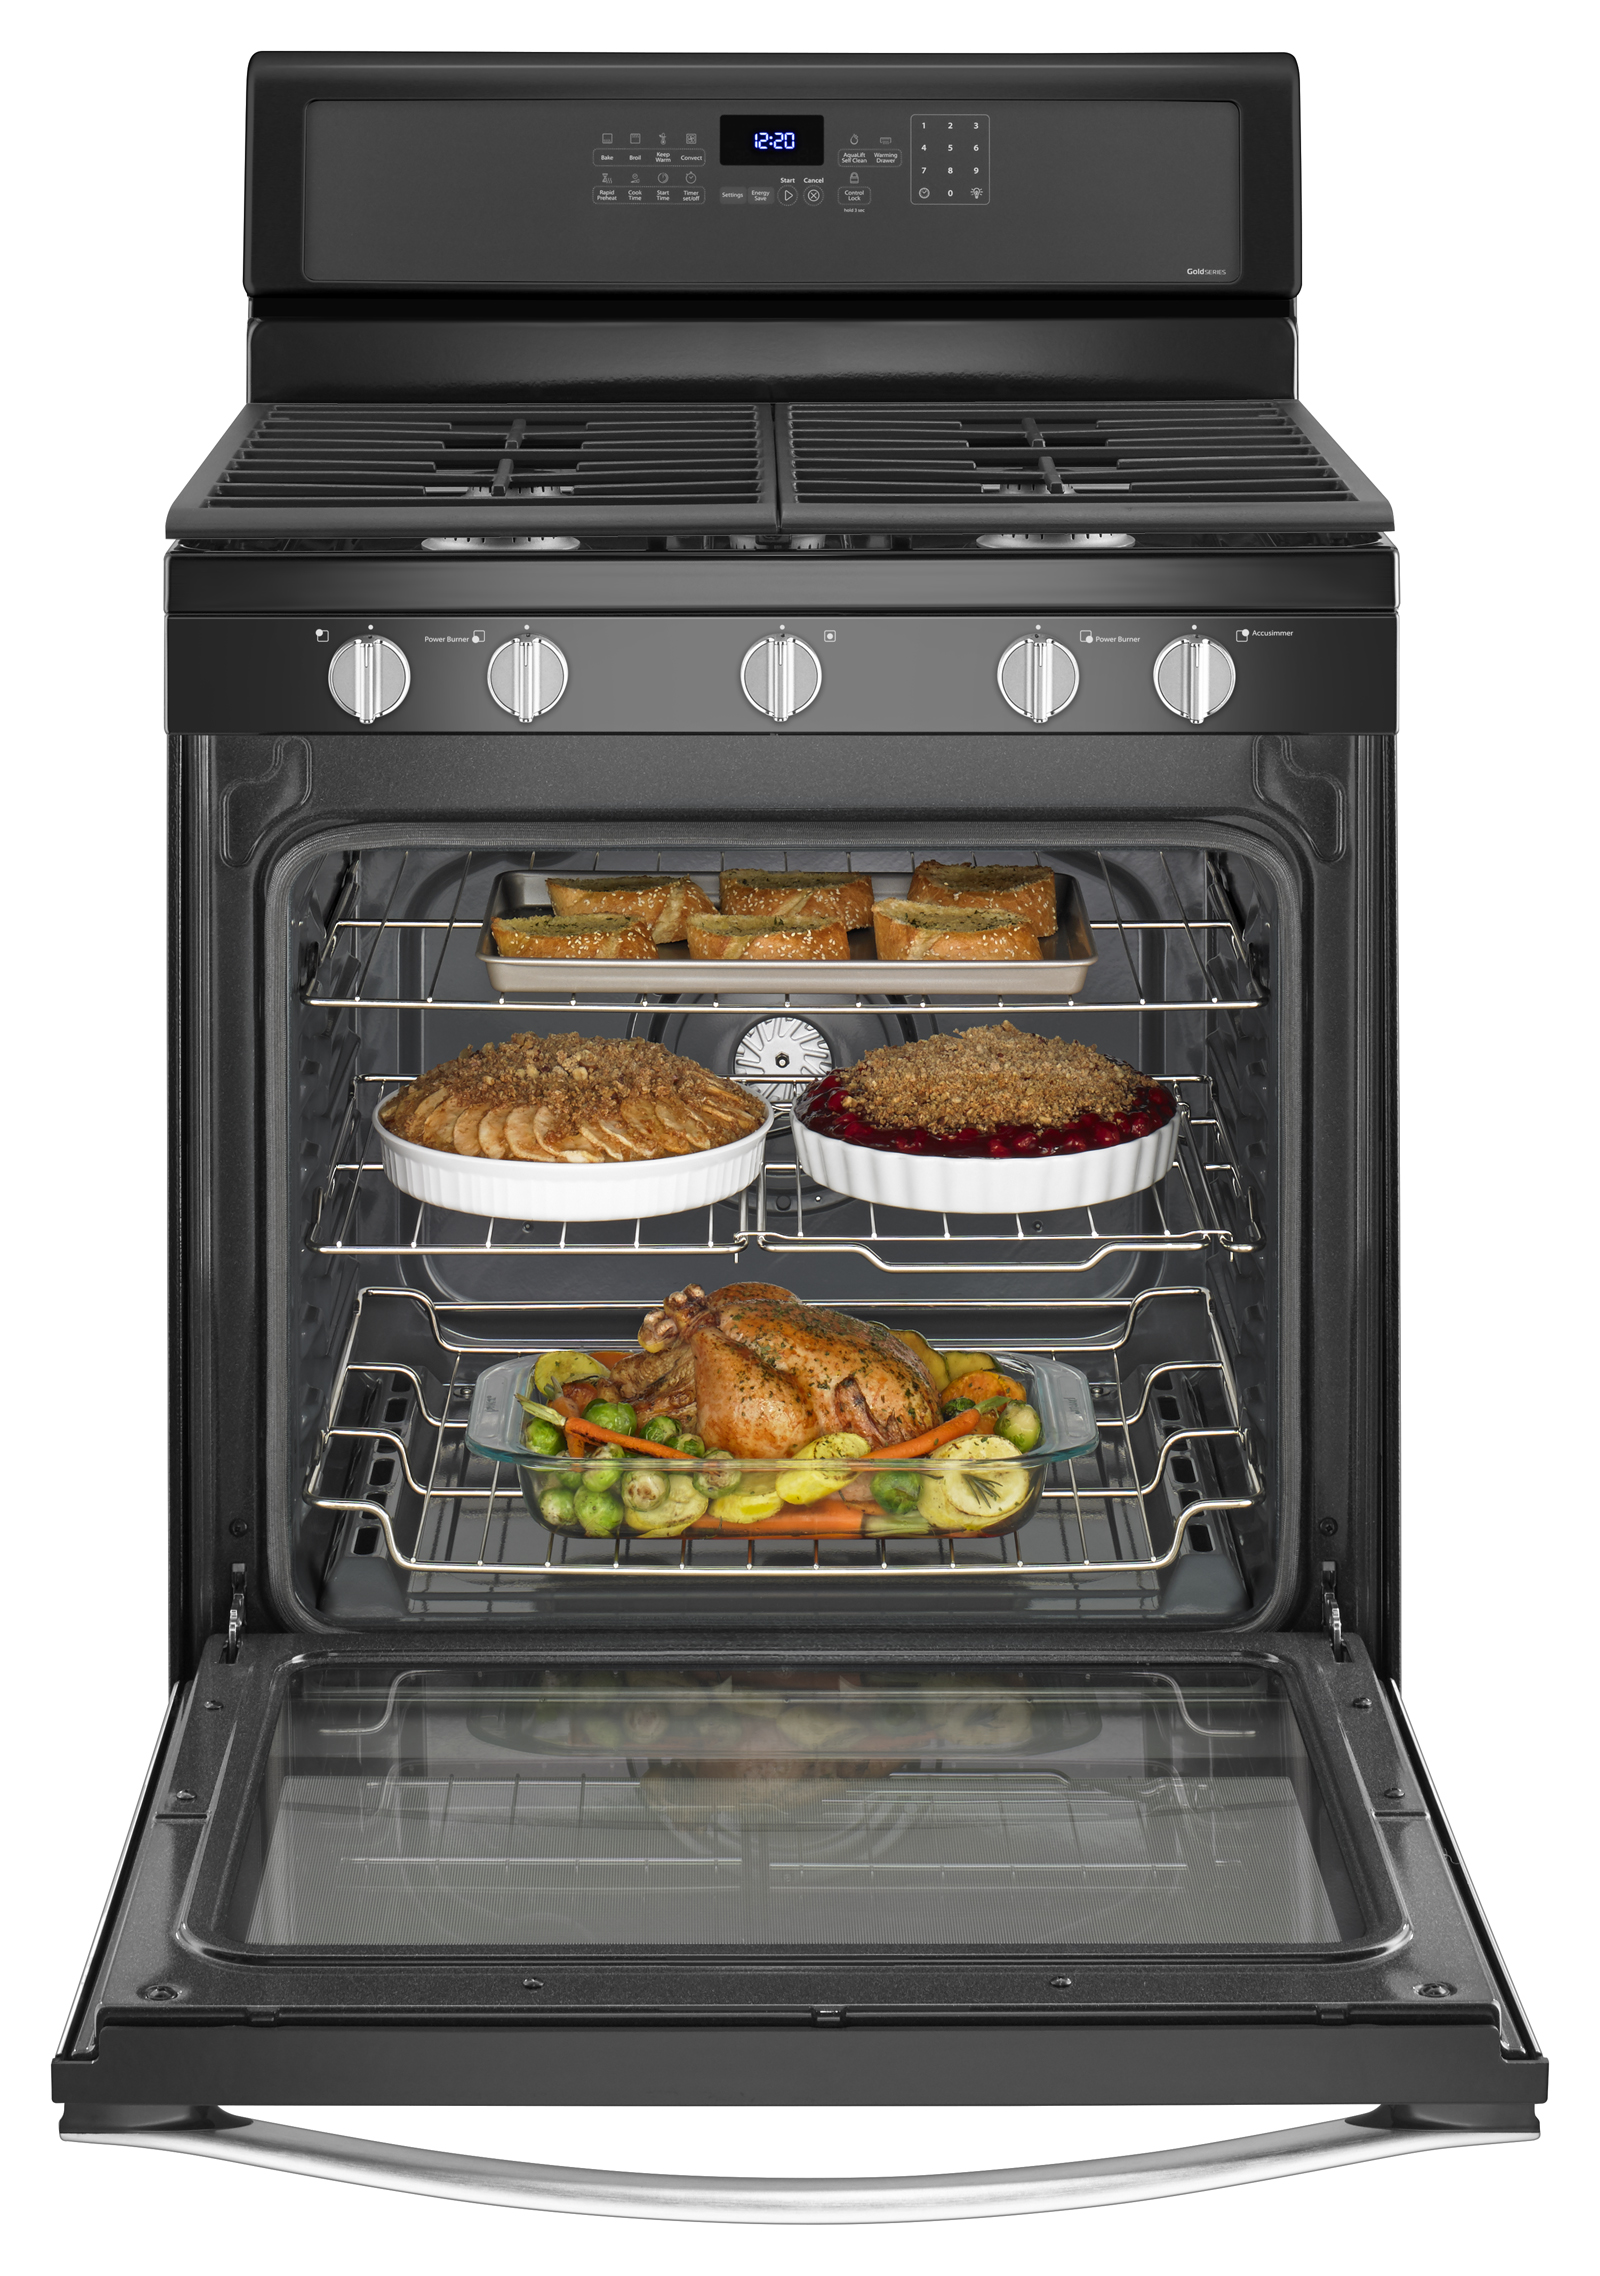 Whirlpool WFG715H0EE 5.8 cu. ft. Freestanding Gas Range - Black Ice